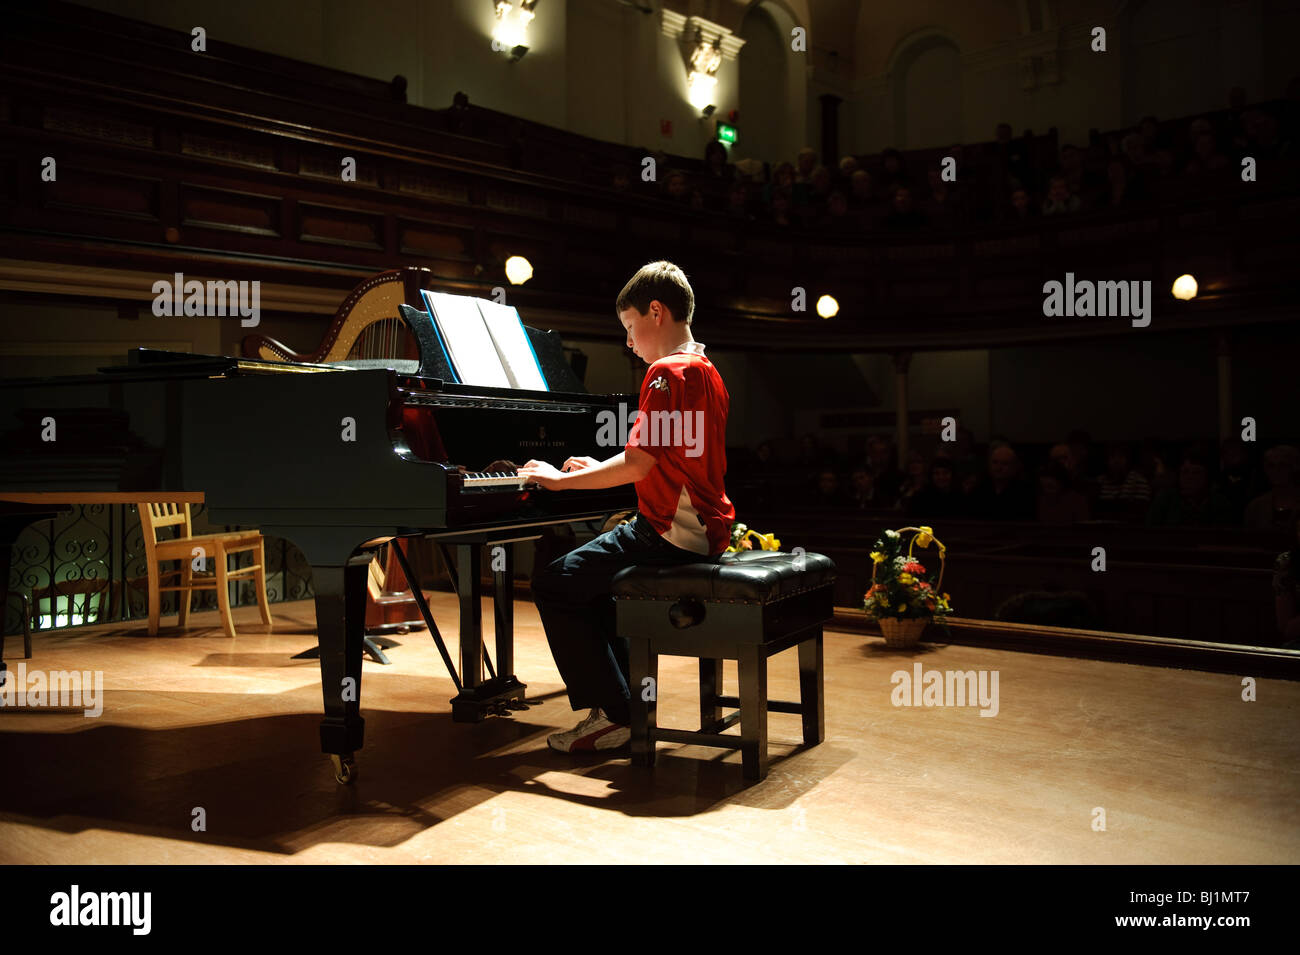 A young teenage boy competing in a music competition playing the grand piano in a small concert hall, UK - Stock Image